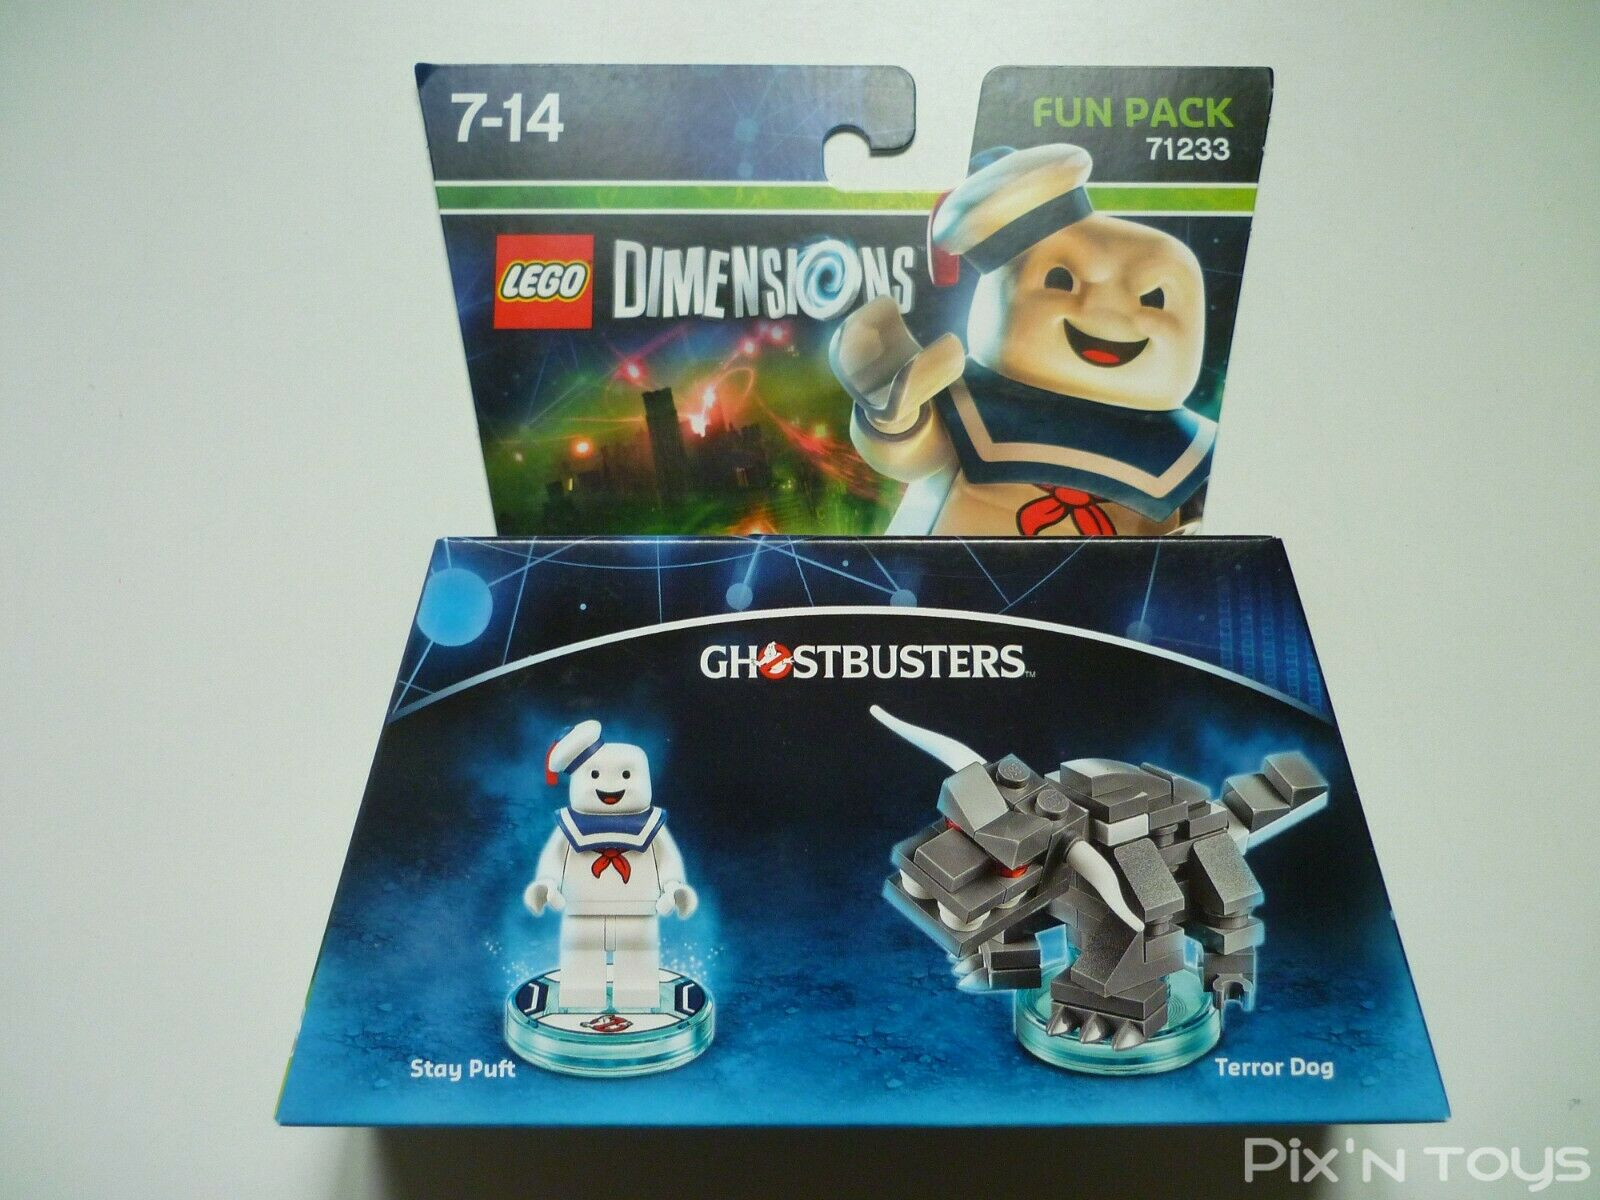 Lego DIMENSIONS Fun Verpackung 71233 Ghostbusters